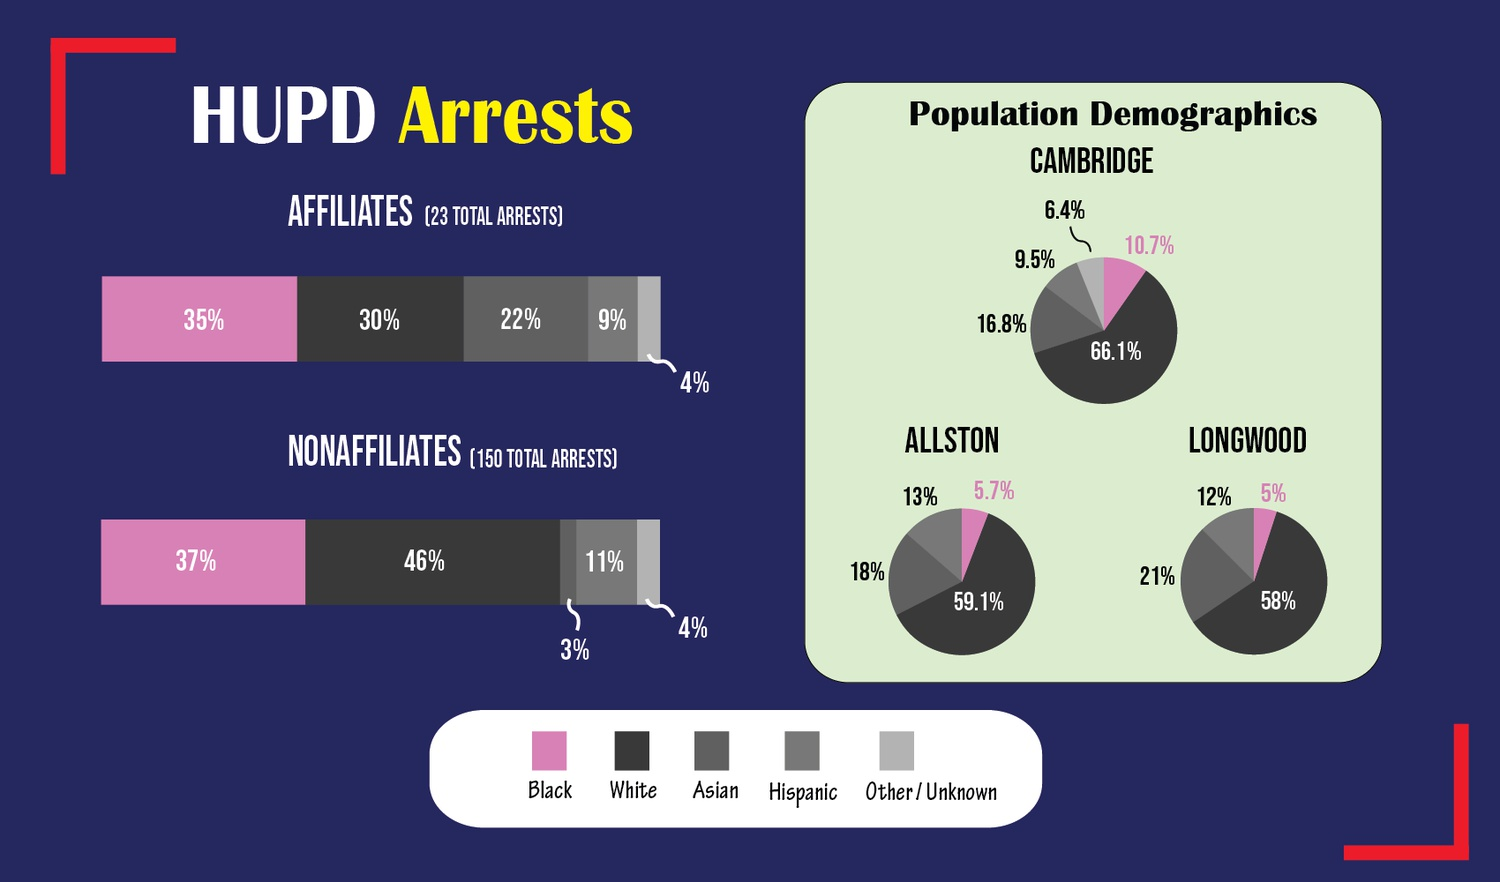 The Harvard University Police Department has been arresting Black people at a disproportionate rate compared to the general population over the last three years.